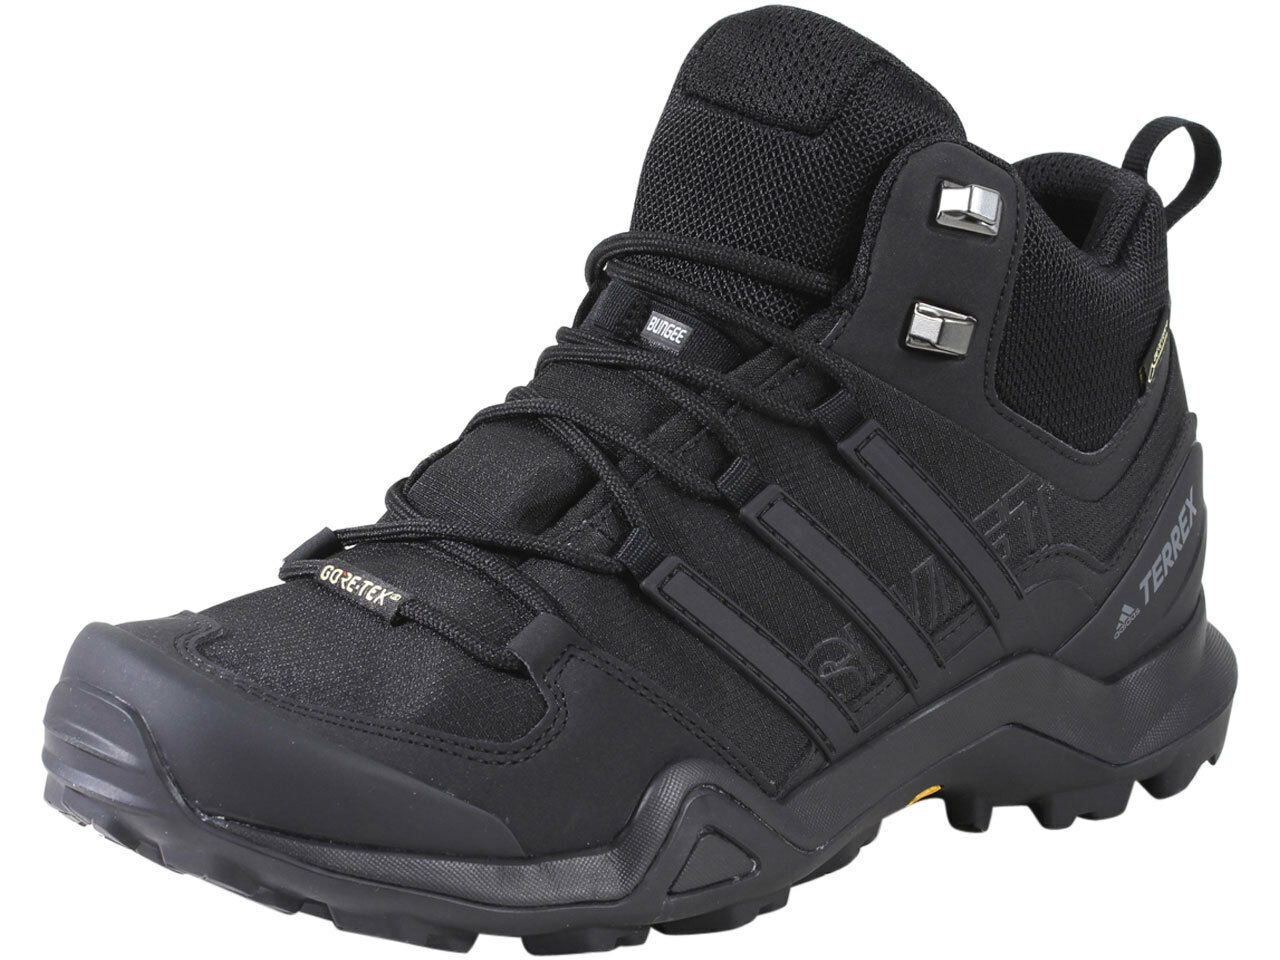 Adidas Men's Terrex Swift R2 Mid GTX Hiking Sneakers shoes